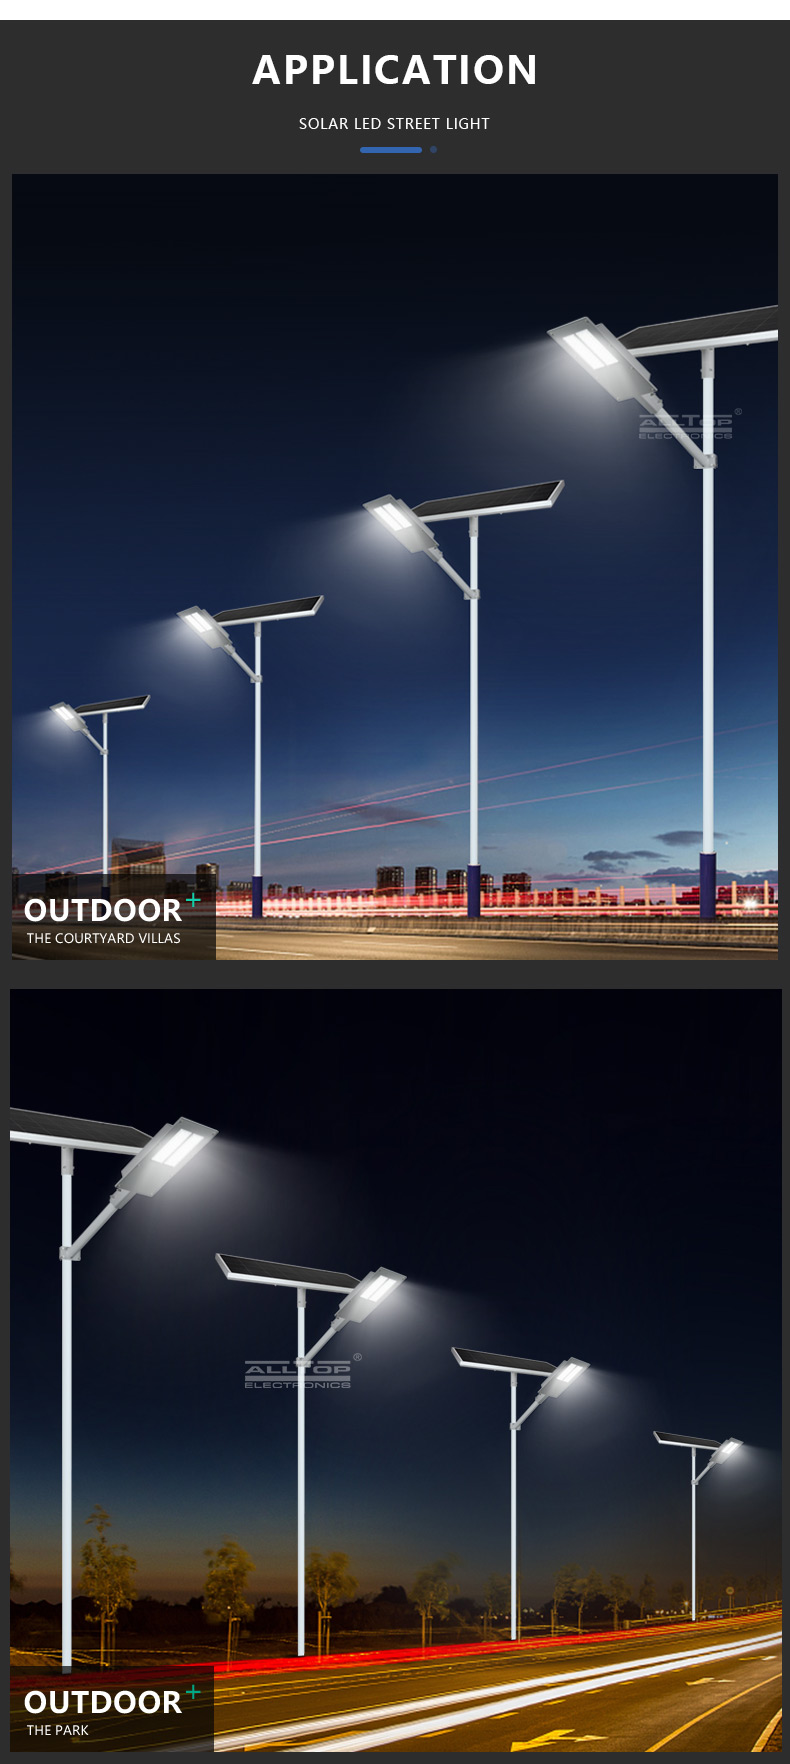 ALLTOP High efficiency waterproof IP65 outdoor lighting smd 90w 180w led solar streetlight